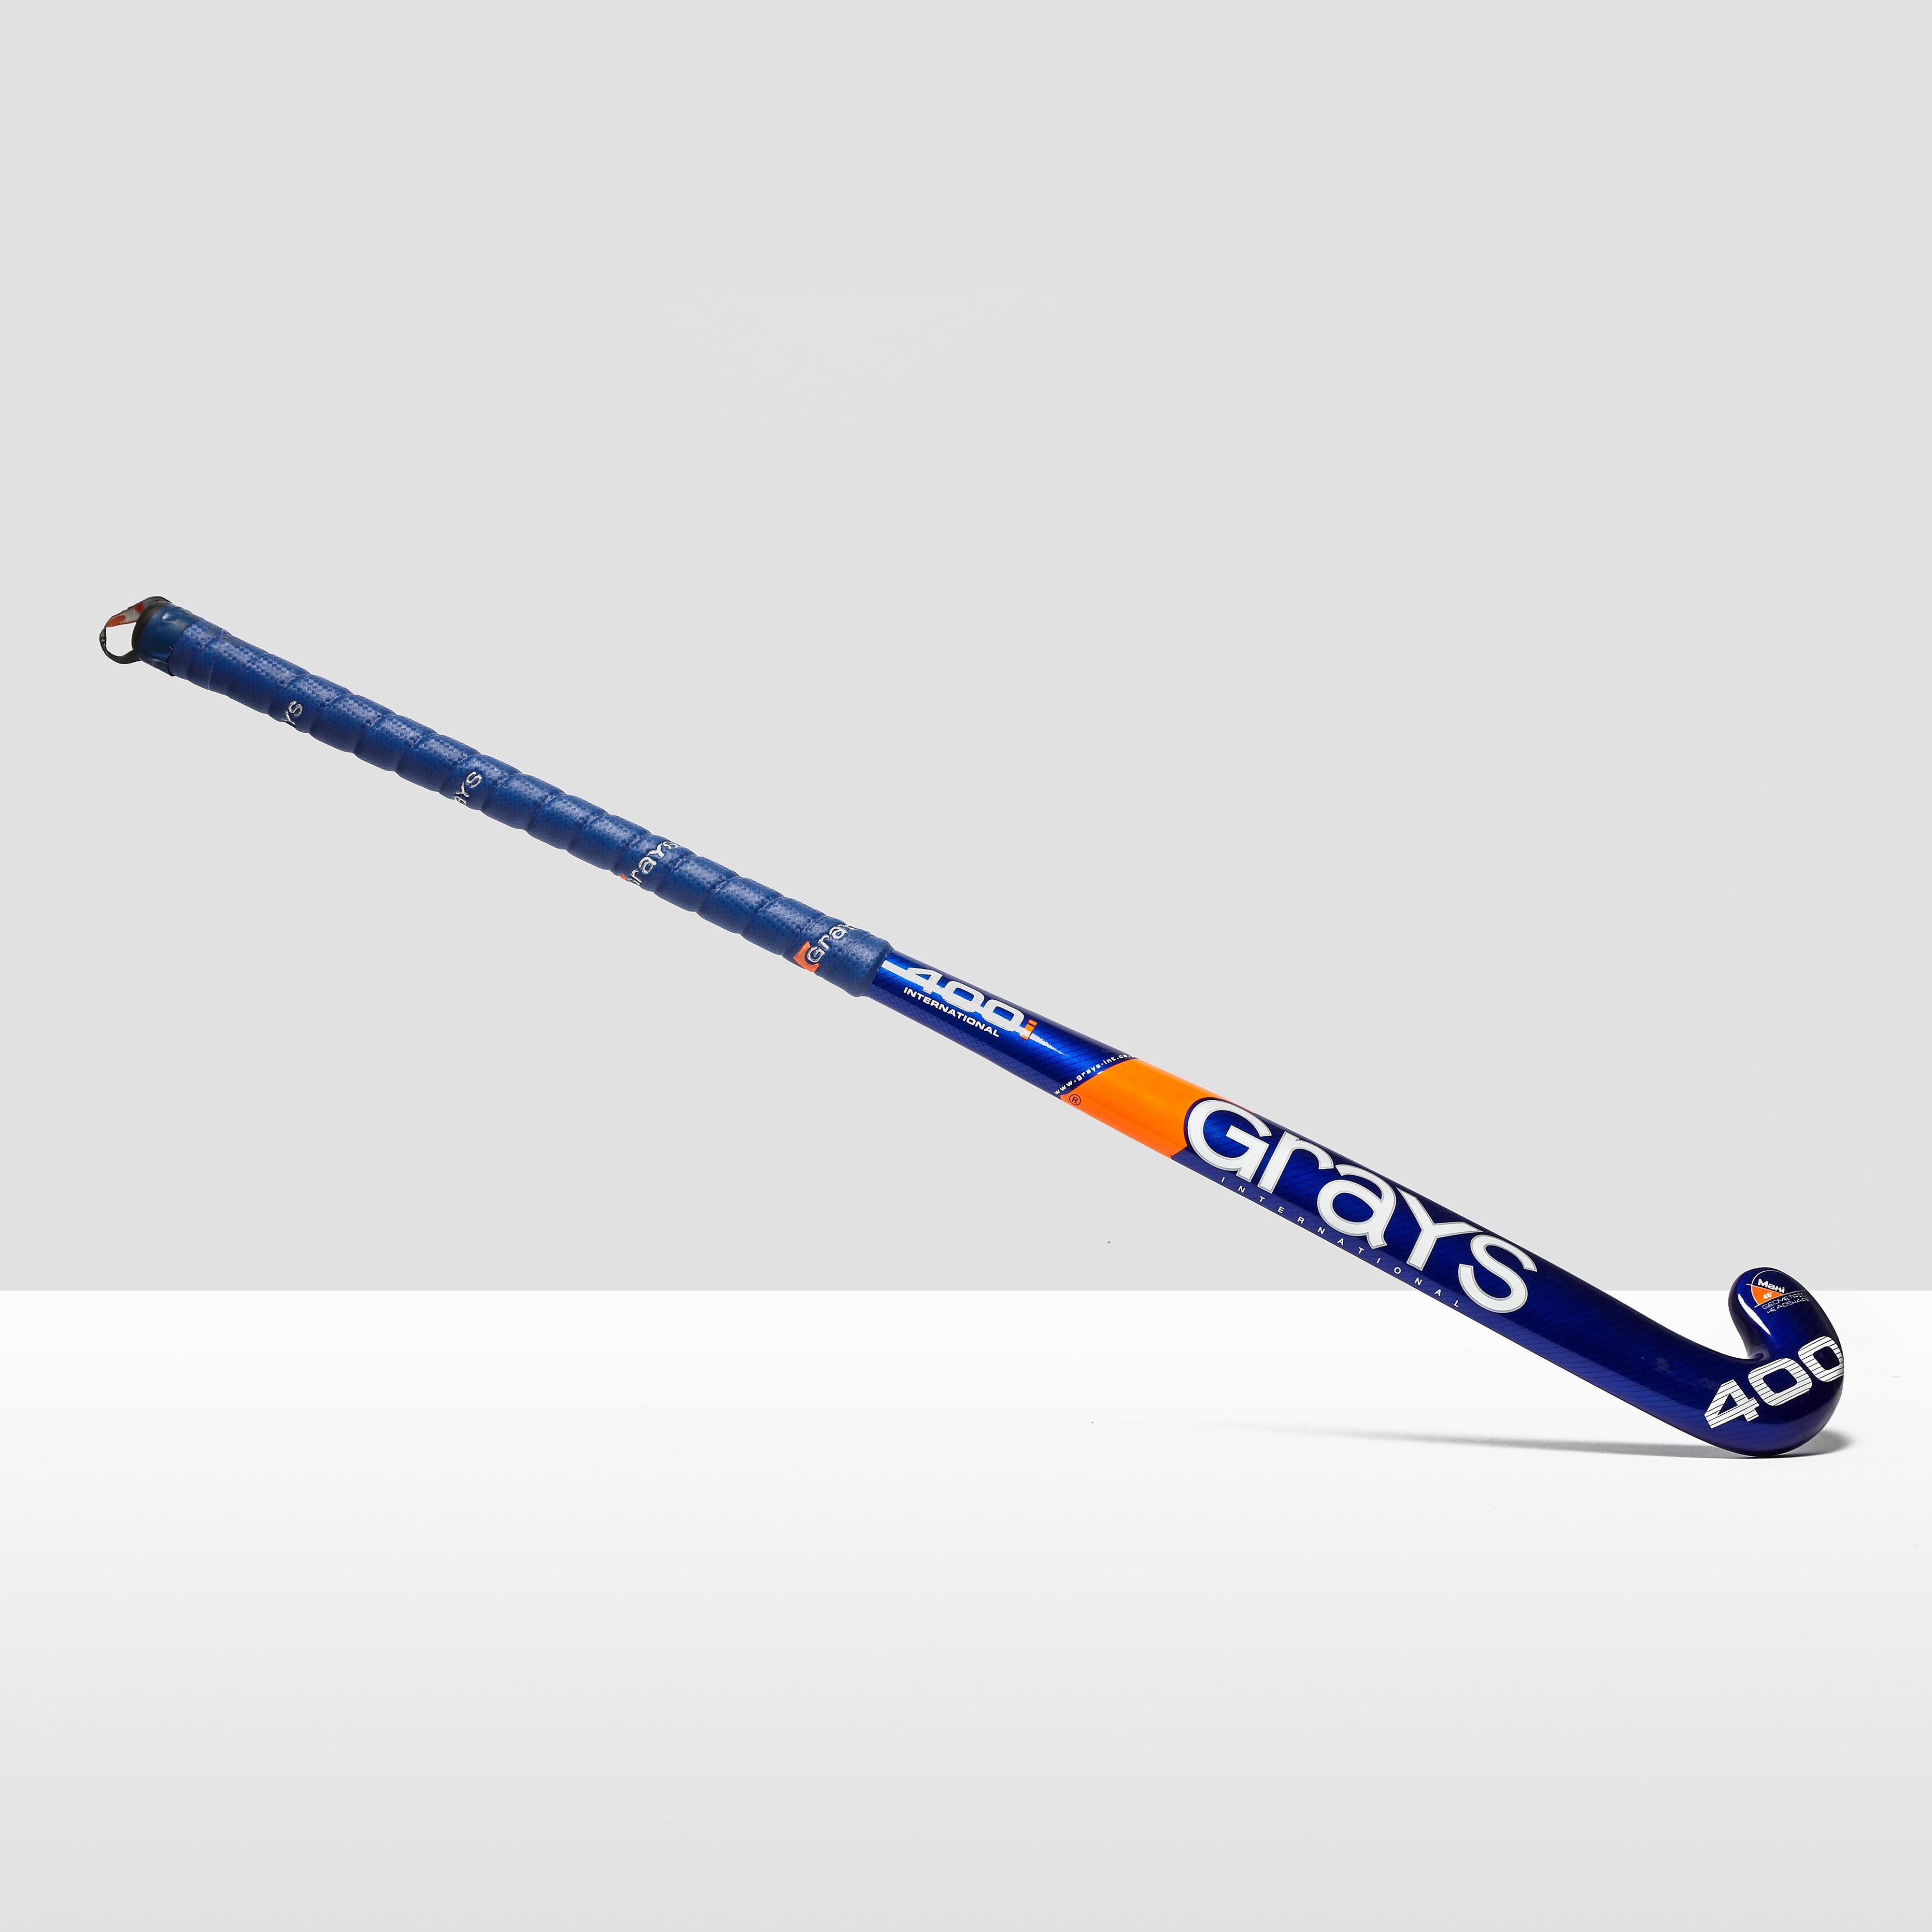 Grays 400i Maxi Wooden Hockey Stick